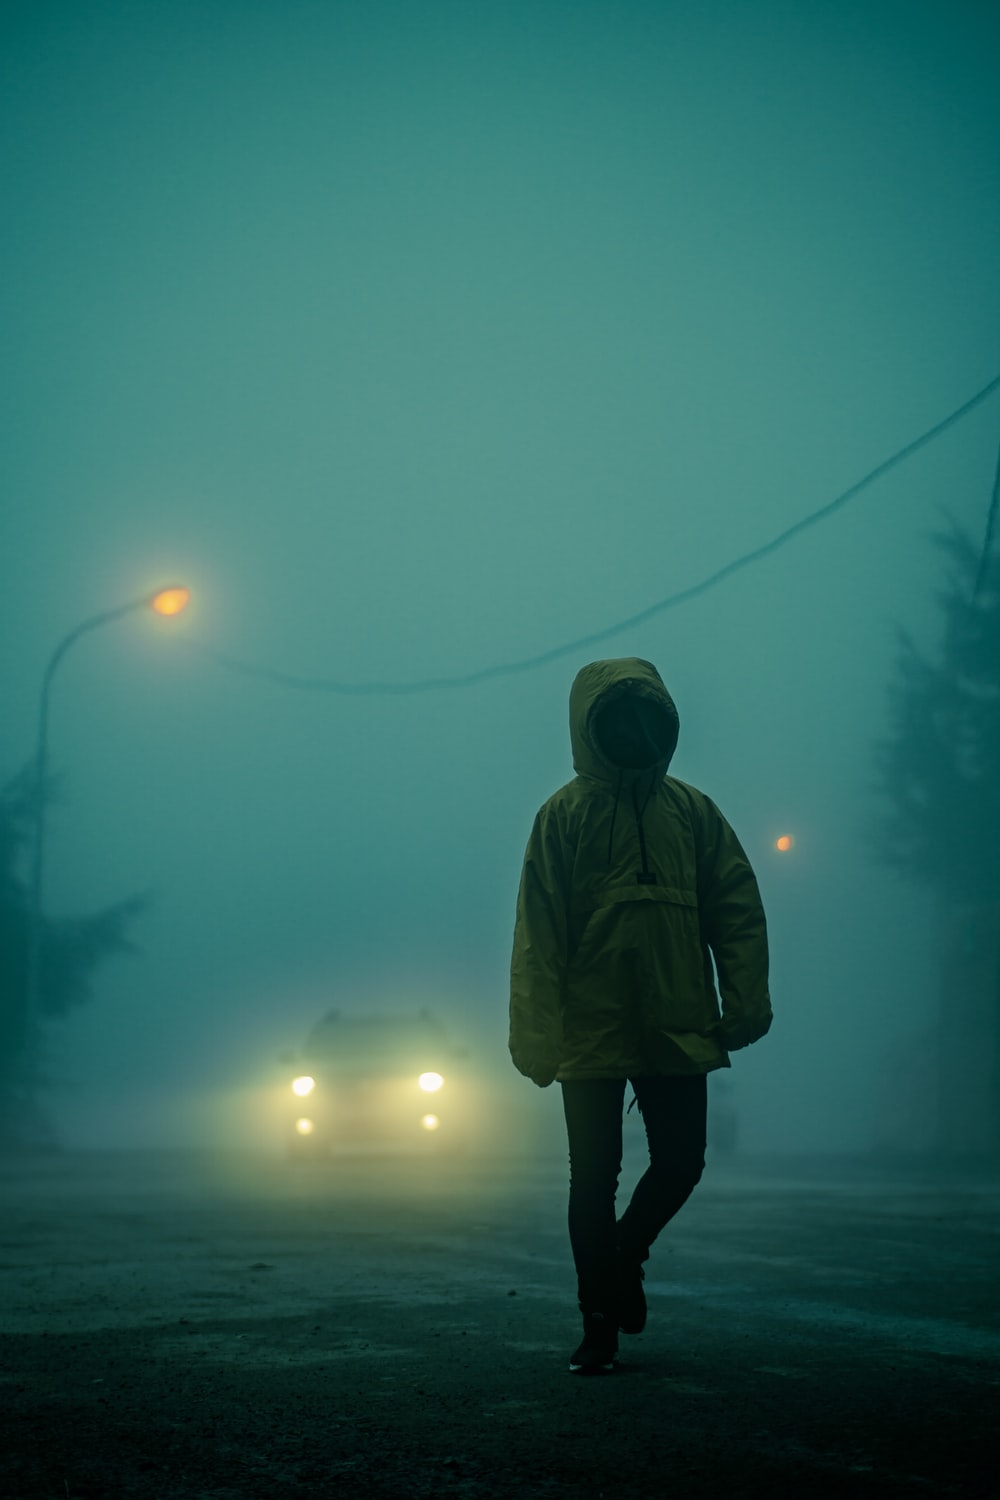 person in brown hoodie standing on road during night time